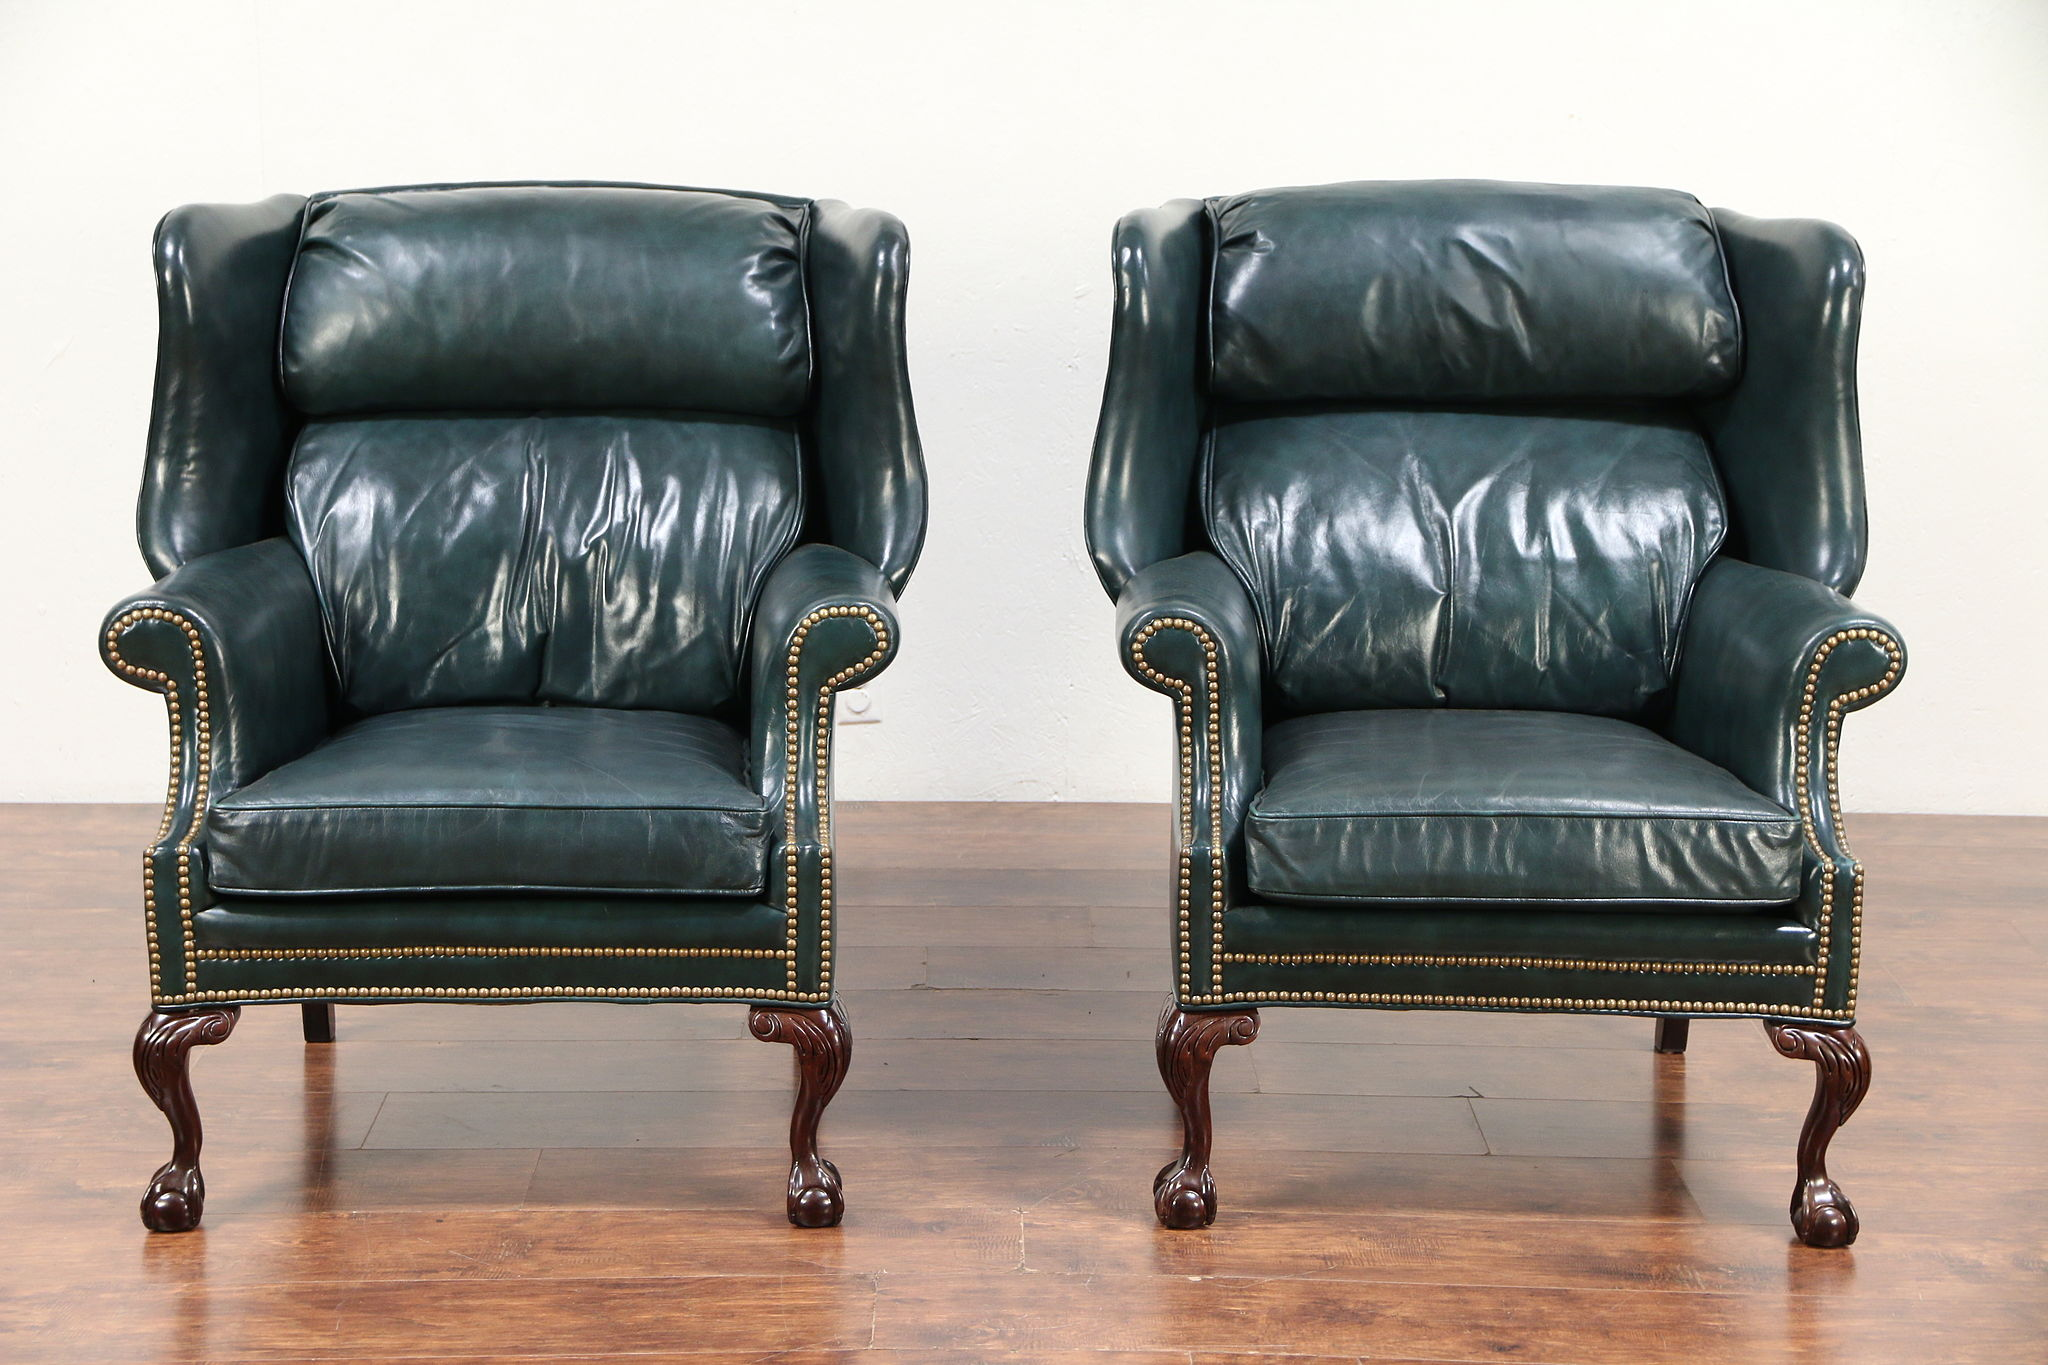 leather wing chairs queen anne style recliner chair sold georgian pair traditional vintage signed parliament 29587 harp gallery